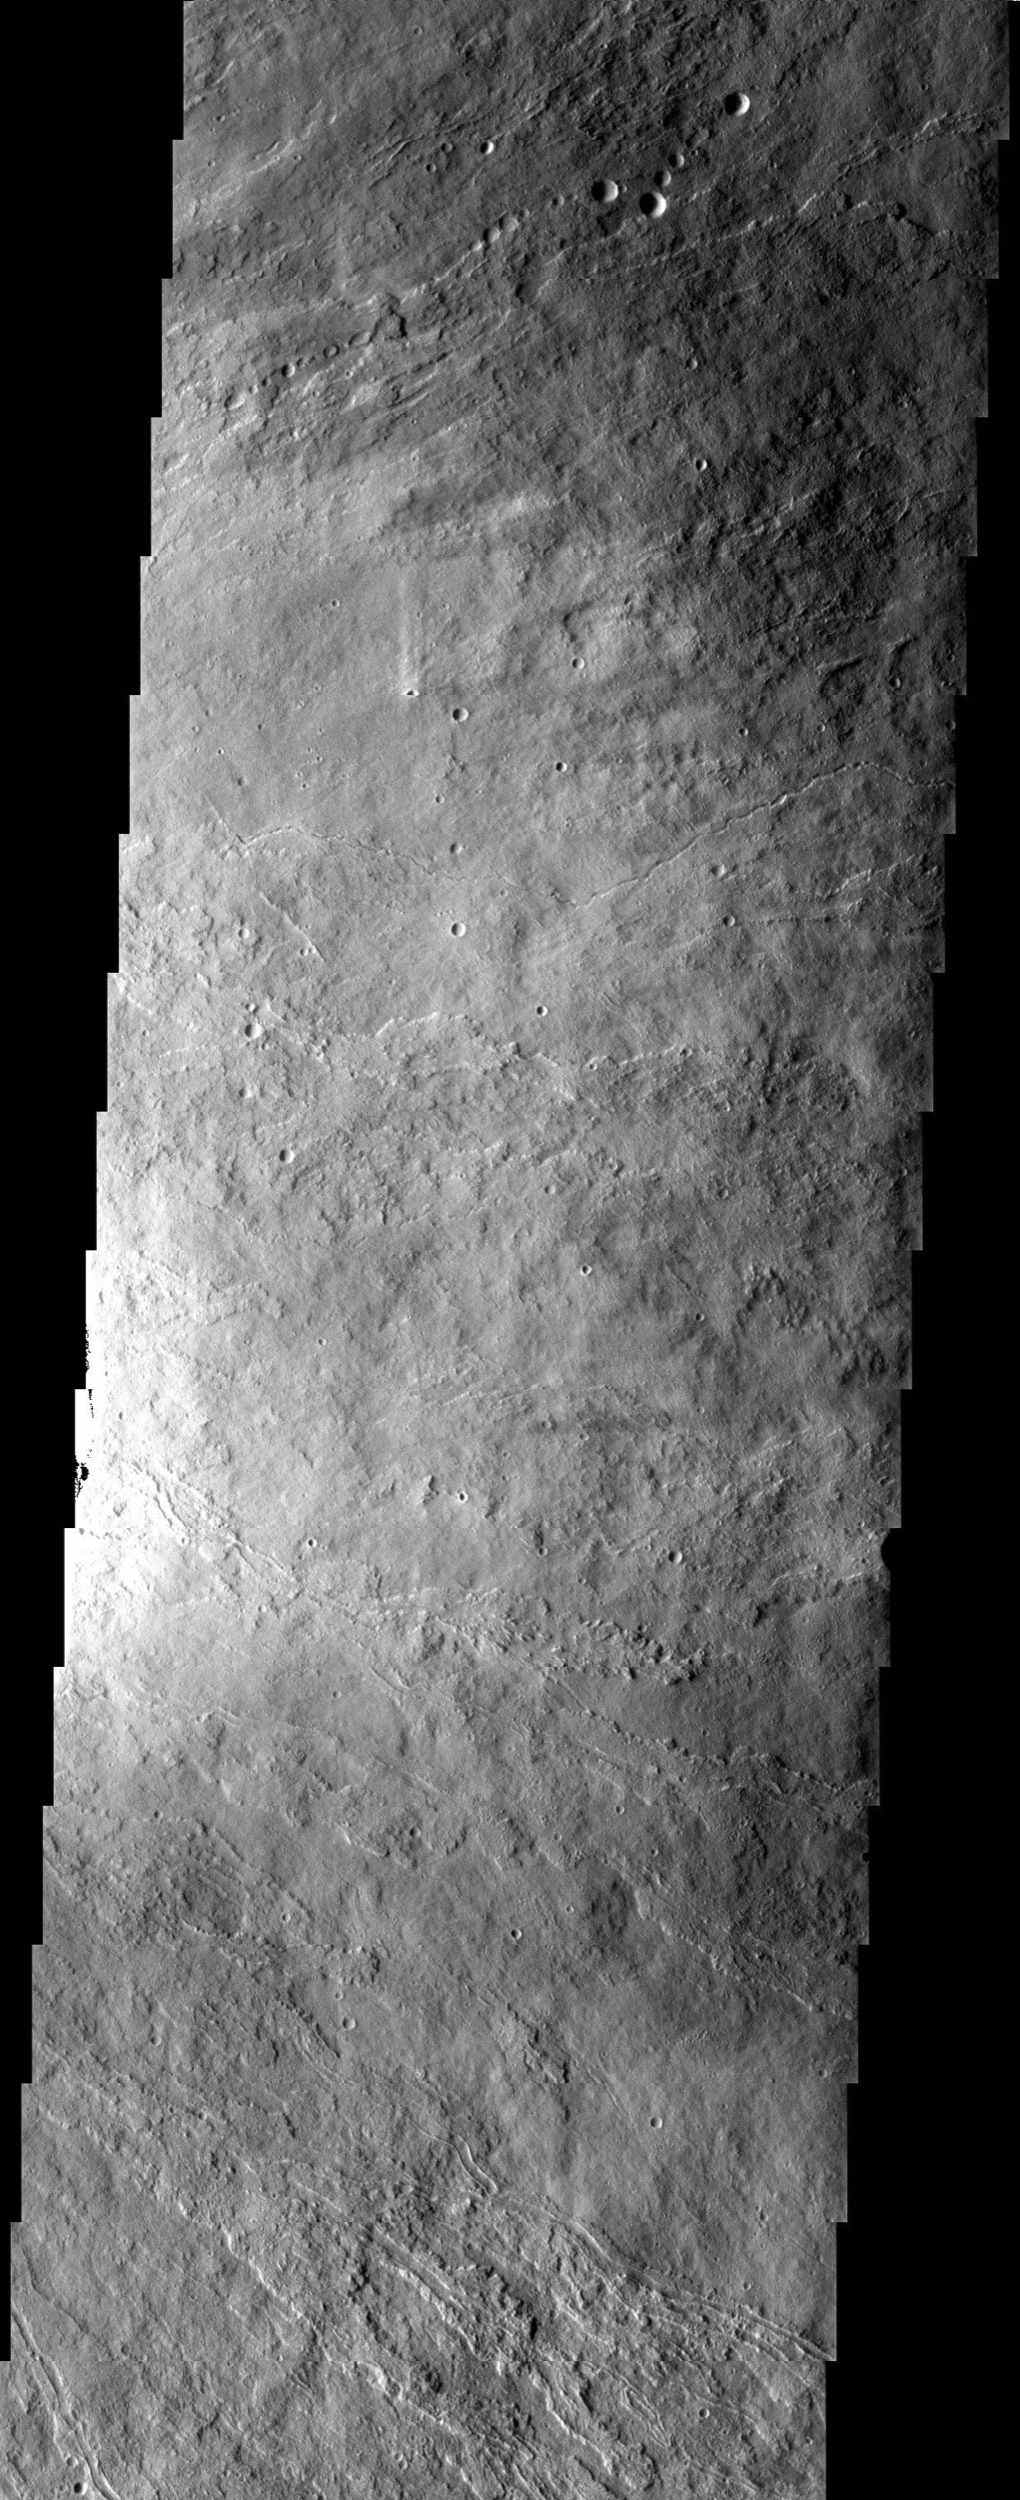 The surface textures observed in this NASA Mars Odyssey image of Ascraeus Mons are due to different volcanic flow types. Textural variations can be produced under a variety of different conditions such as varying cooling and flow rates.